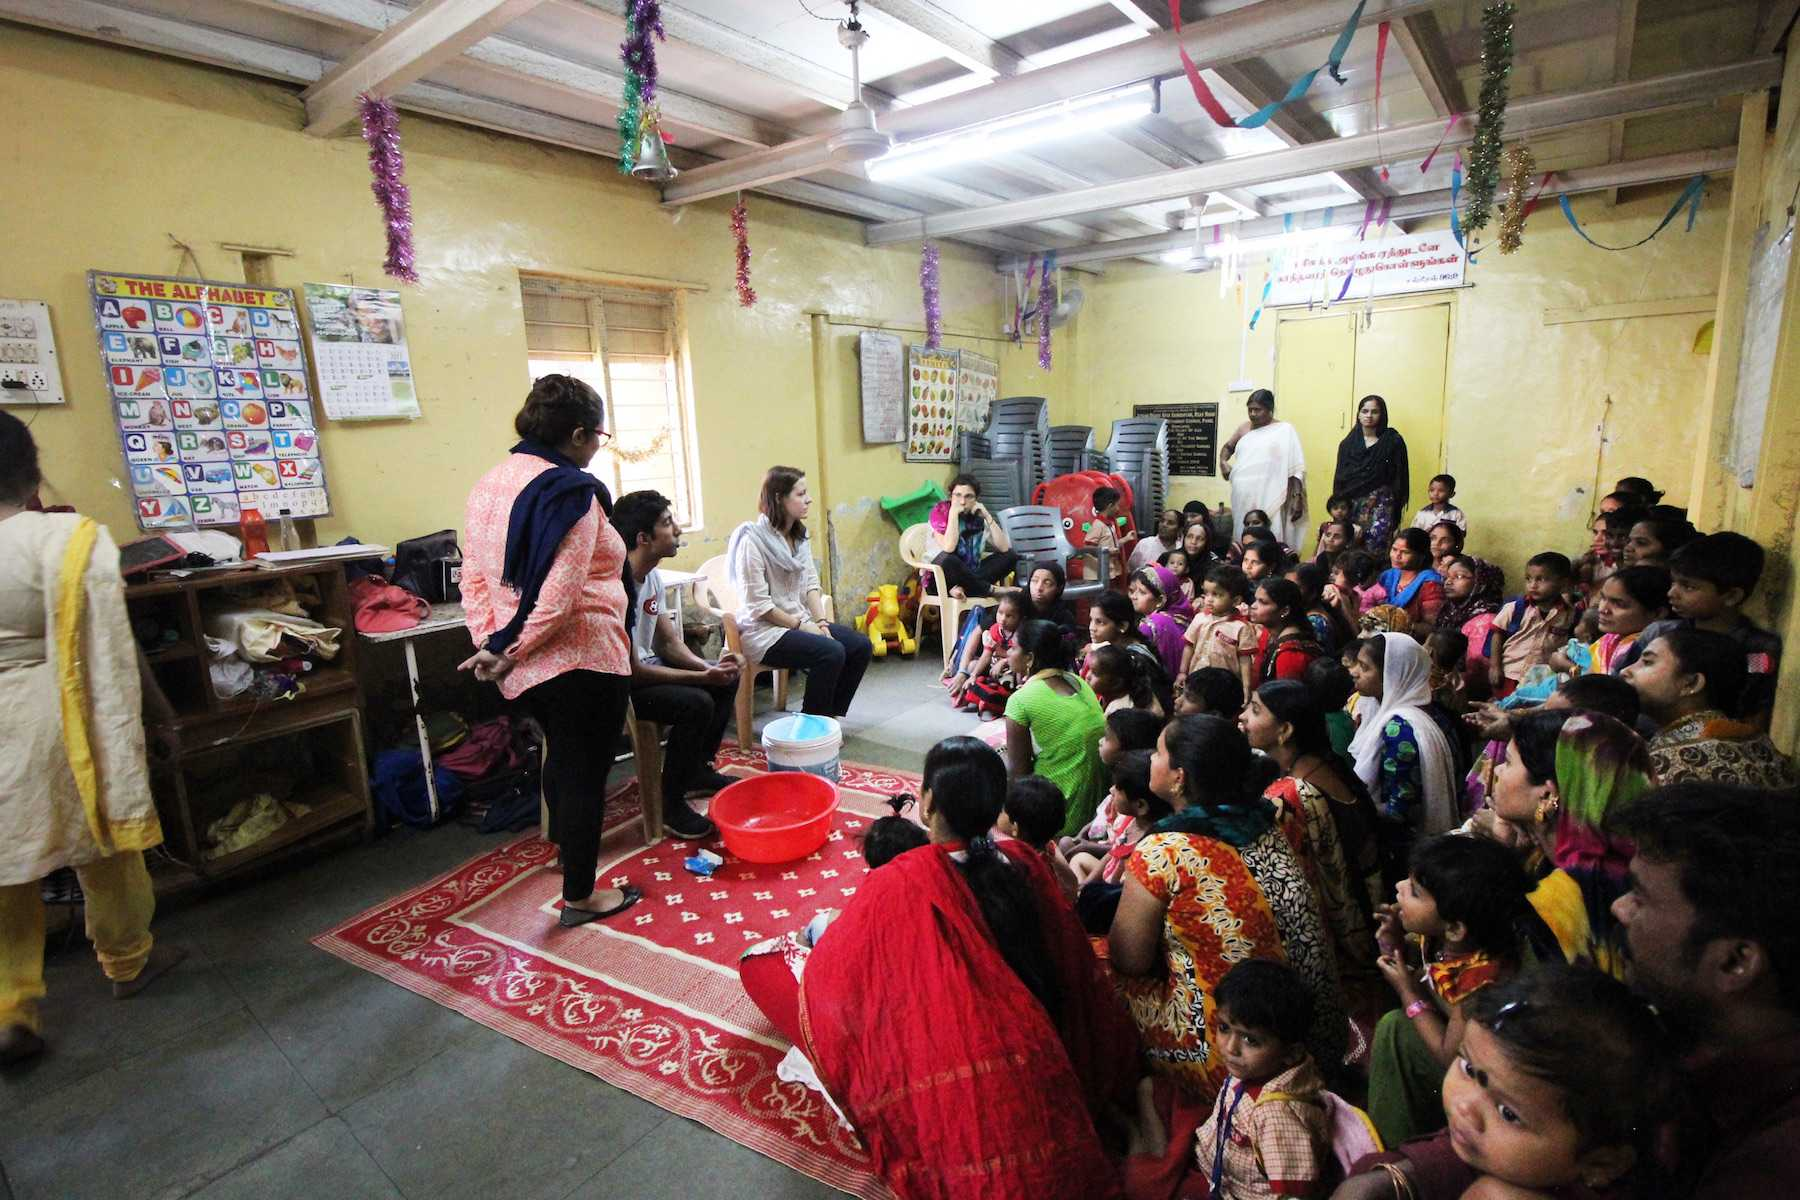 CAS senior Darshan Mahabare teaches a classroom of children, mothers, teachers and social workers in Mumbai how to wash their hands. Mahabare, alongside Kanyon Iwami, is a representative of KickToChange, an organization that raises funds by teaching soccer in order to provide hygiene kits for communities that need it.